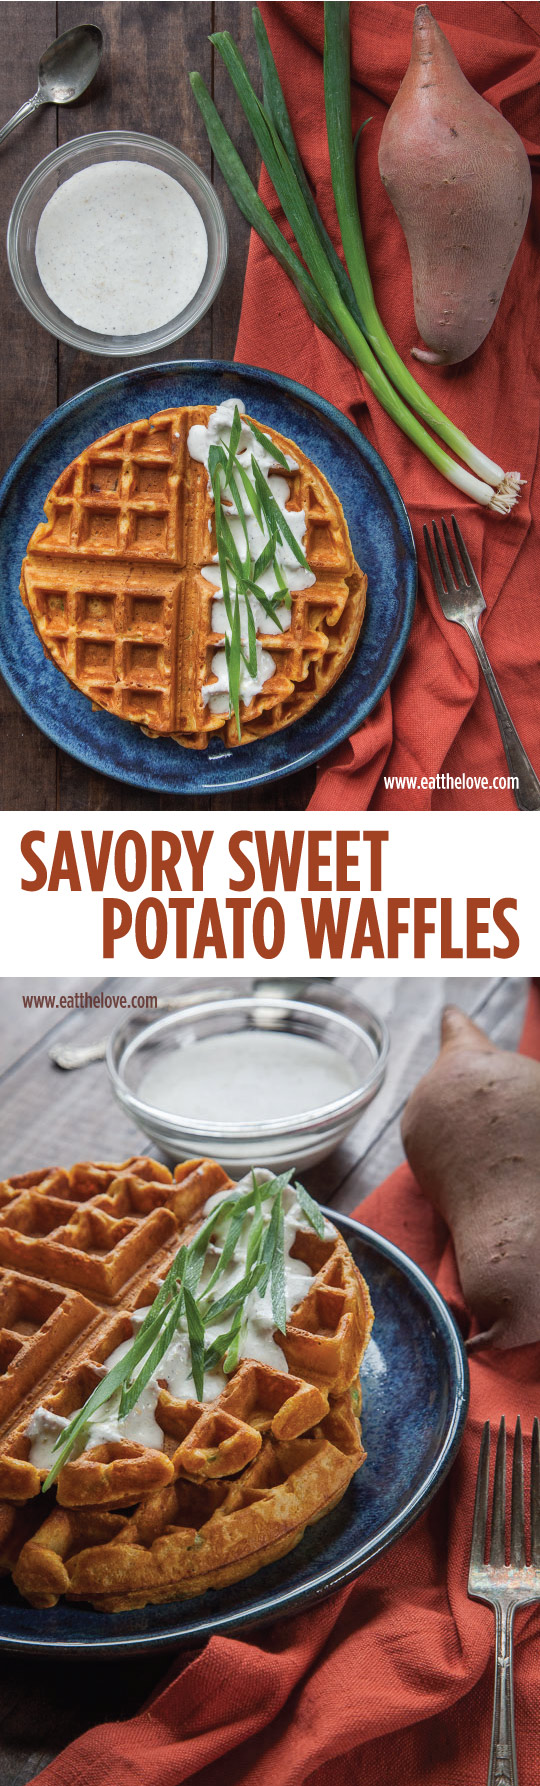 #ad  These Savory Sweet Potato Waffles with Garlic Crème Fraîche make an incredible breakfast or brunch item for Easter or anytime of the year!